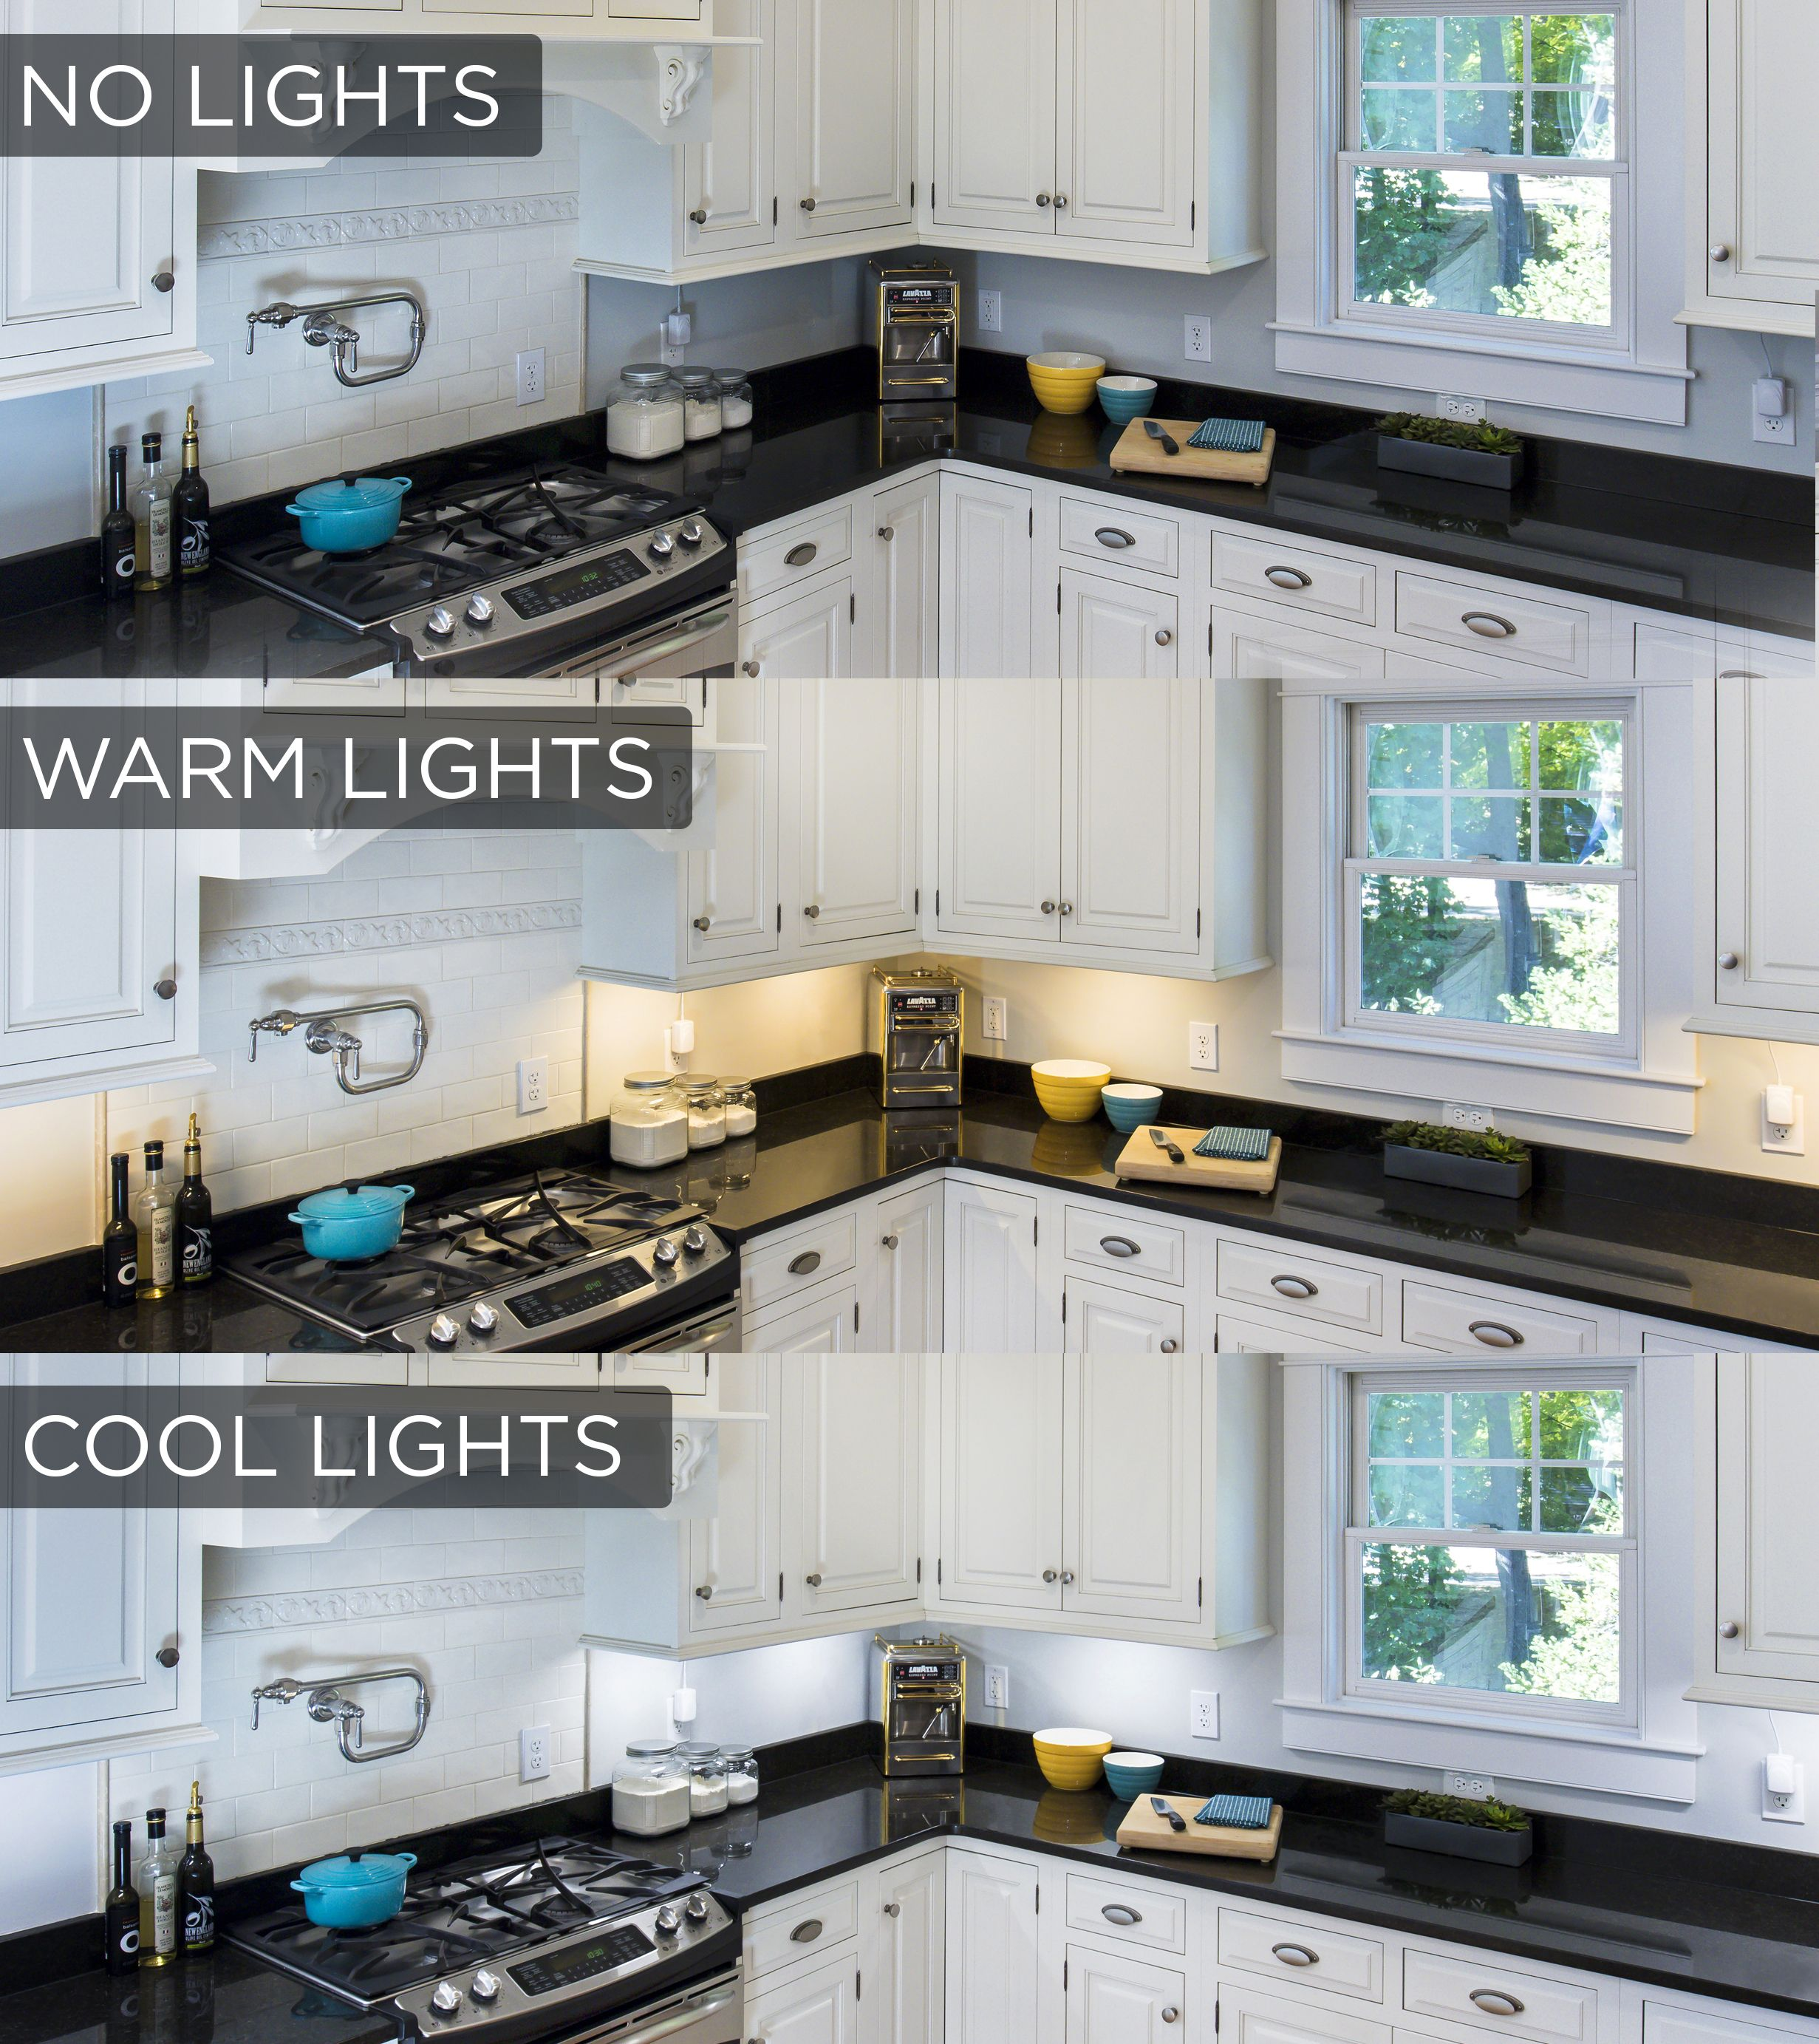 Light Under Kitchen Cabinet: This Under Cabinet Lighting Comparison Shows The Stark